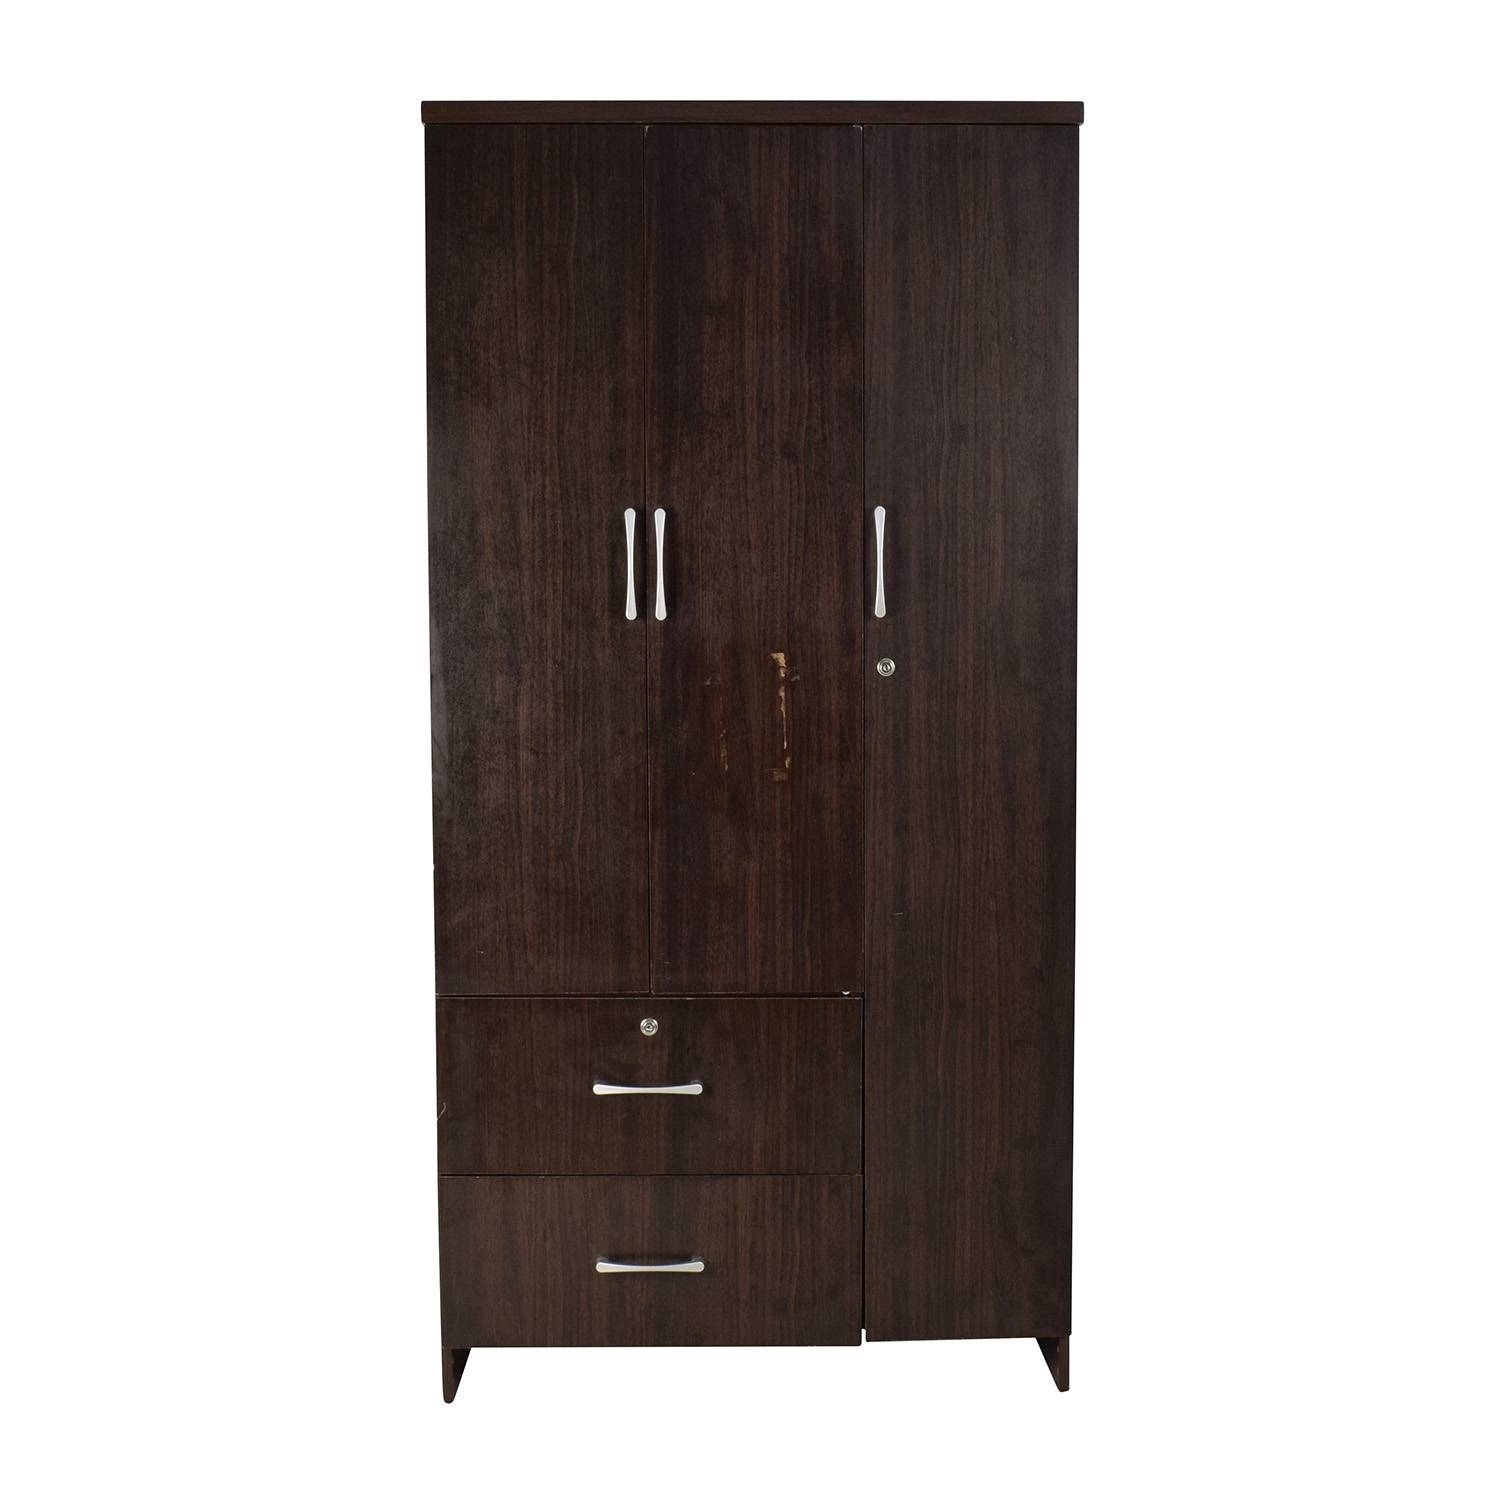 Wardrobes & Armoires: Used Wardrobes & Armoires For Sale regarding Dark Wood Wardrobe Cheap (Image 28 of 30)